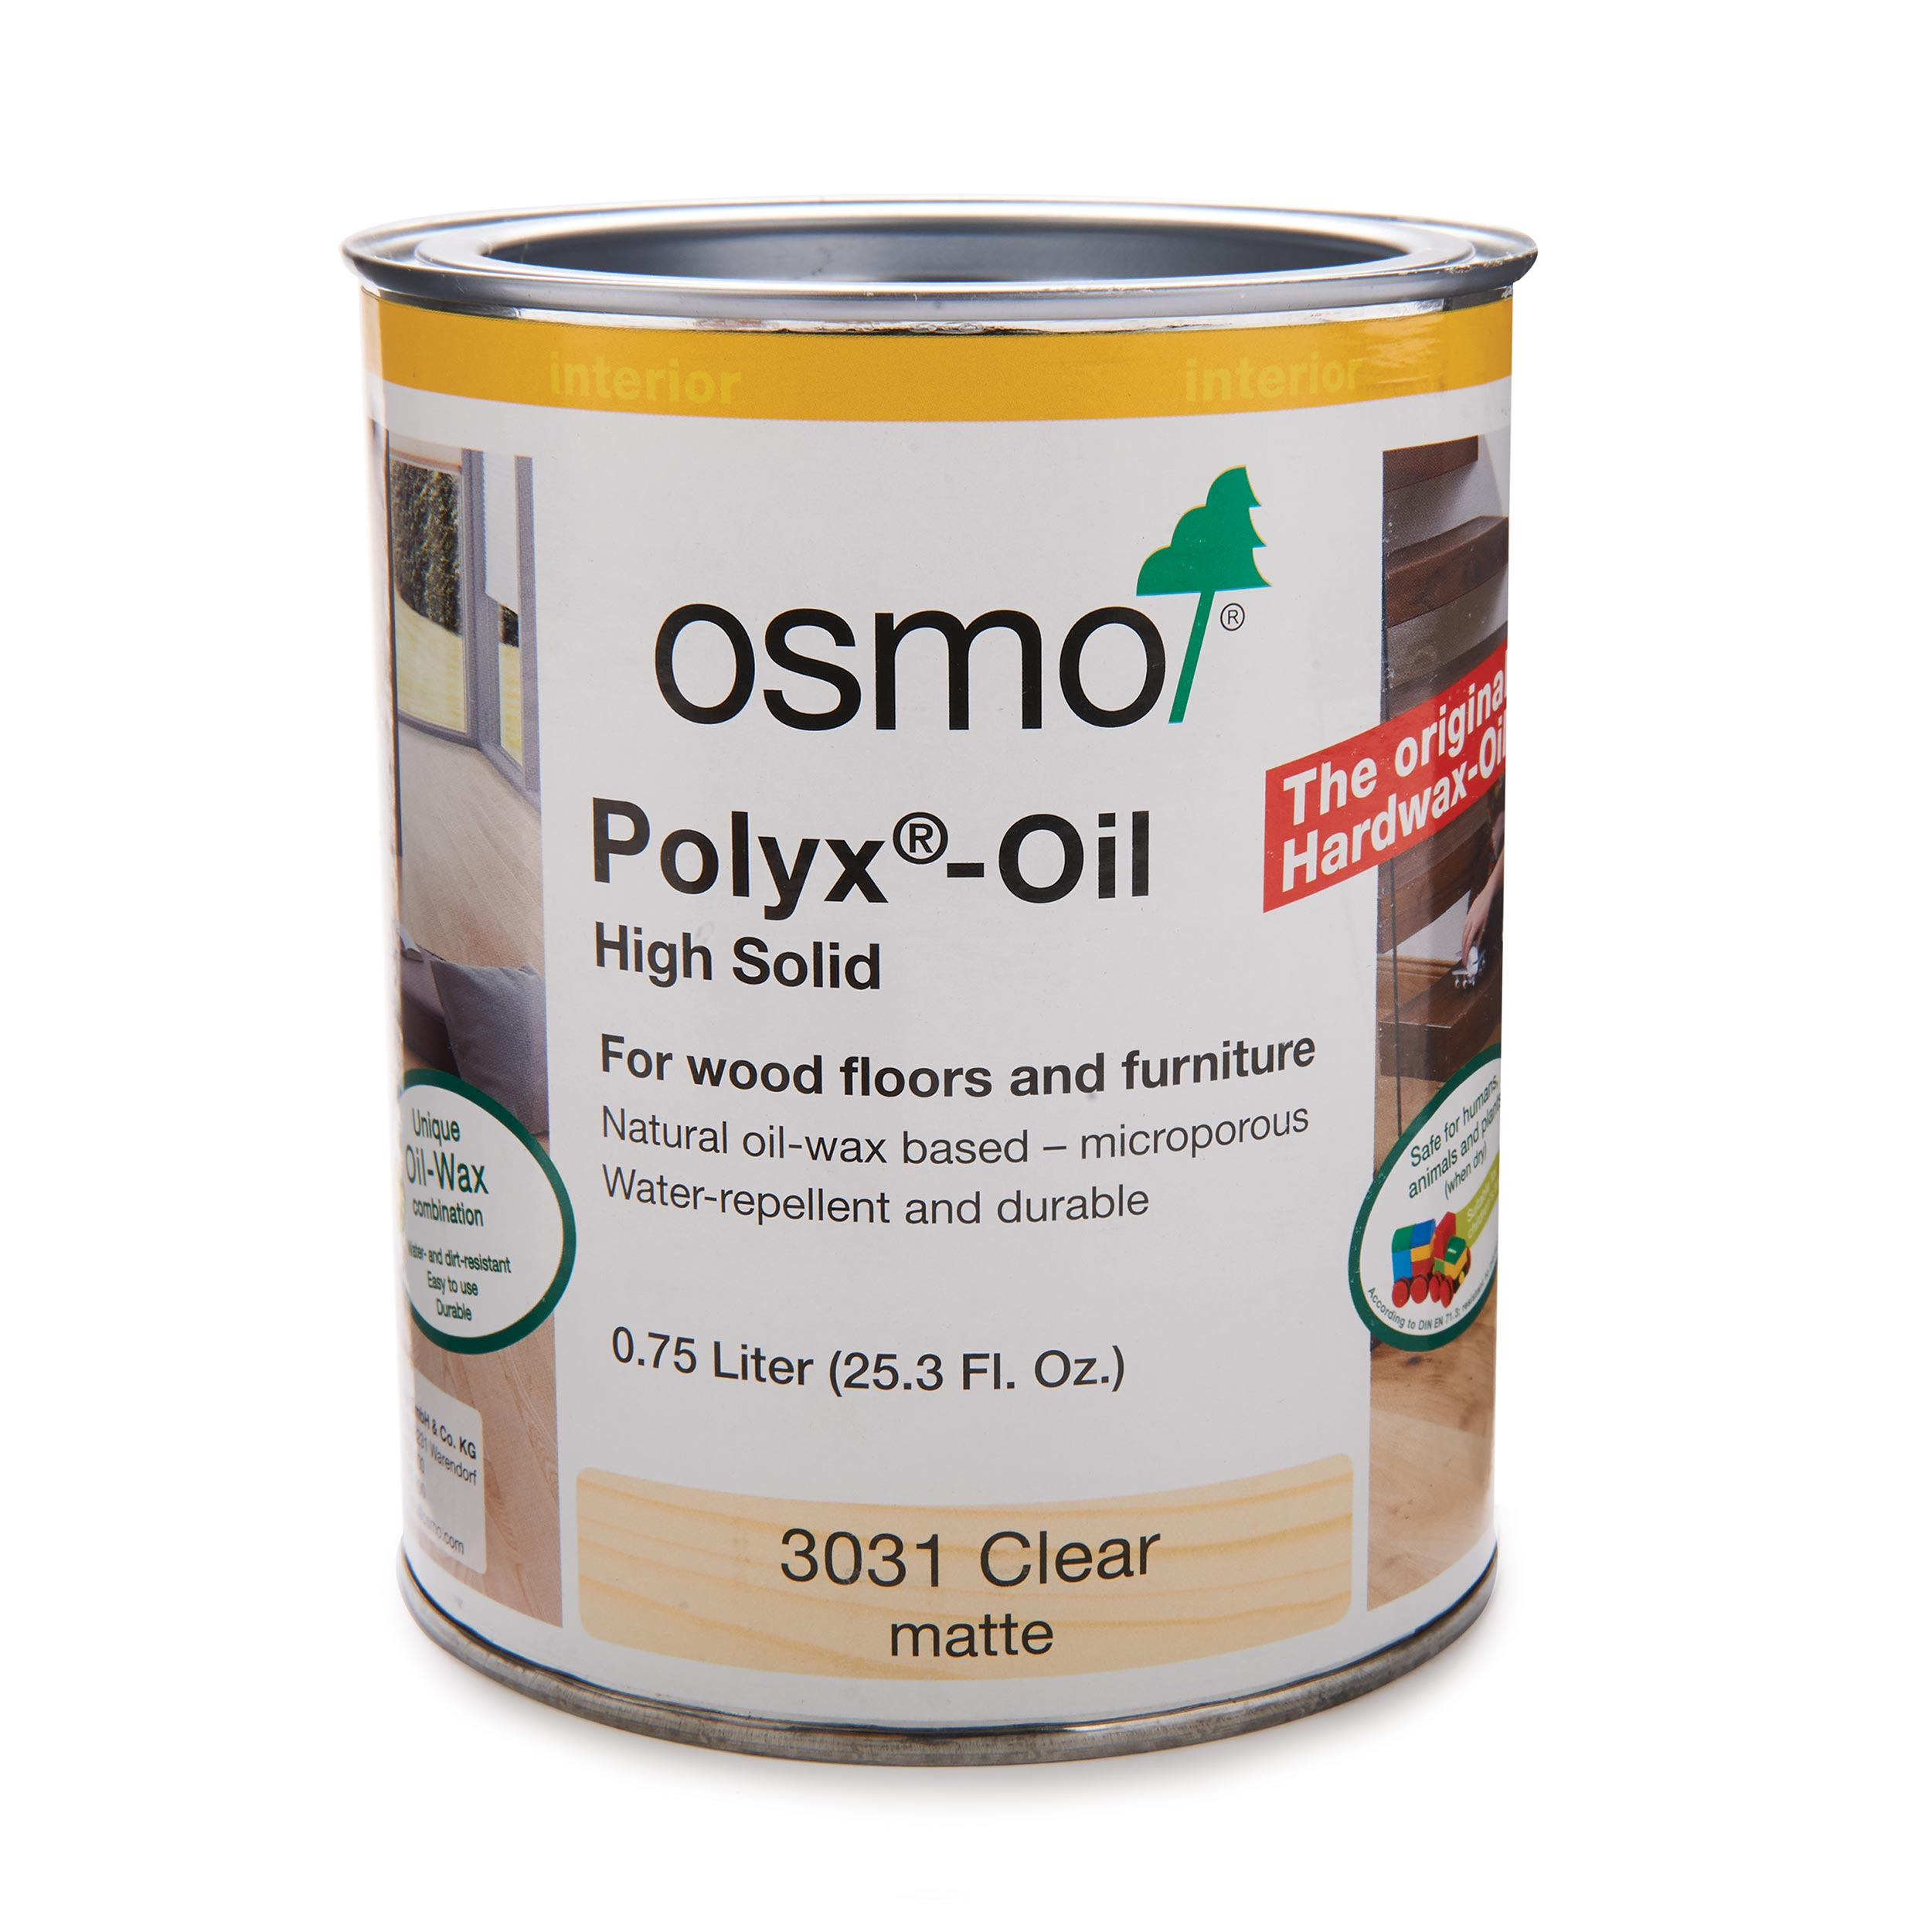 Matte Clear Polyx-Oil 3031?Solvent Based .75 l????????